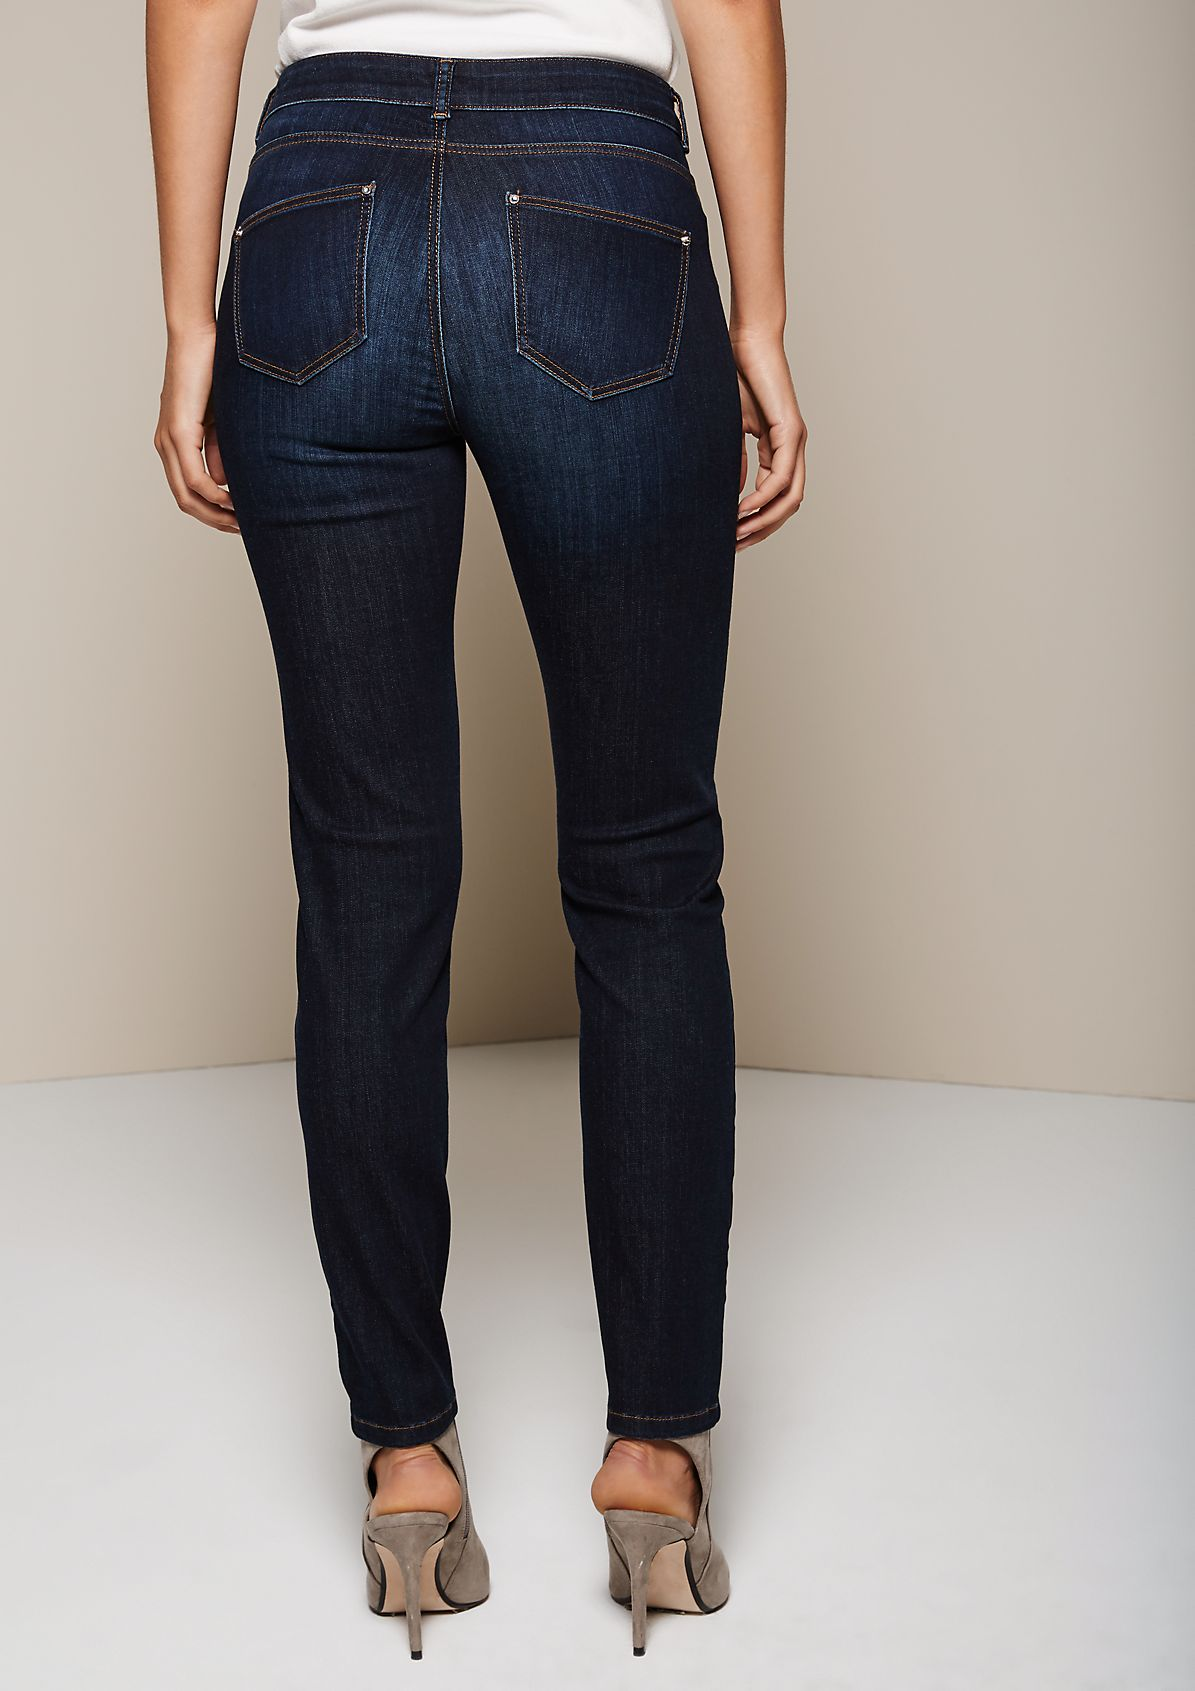 Cool jeans in a beautiful vintage wash from s.Oliver